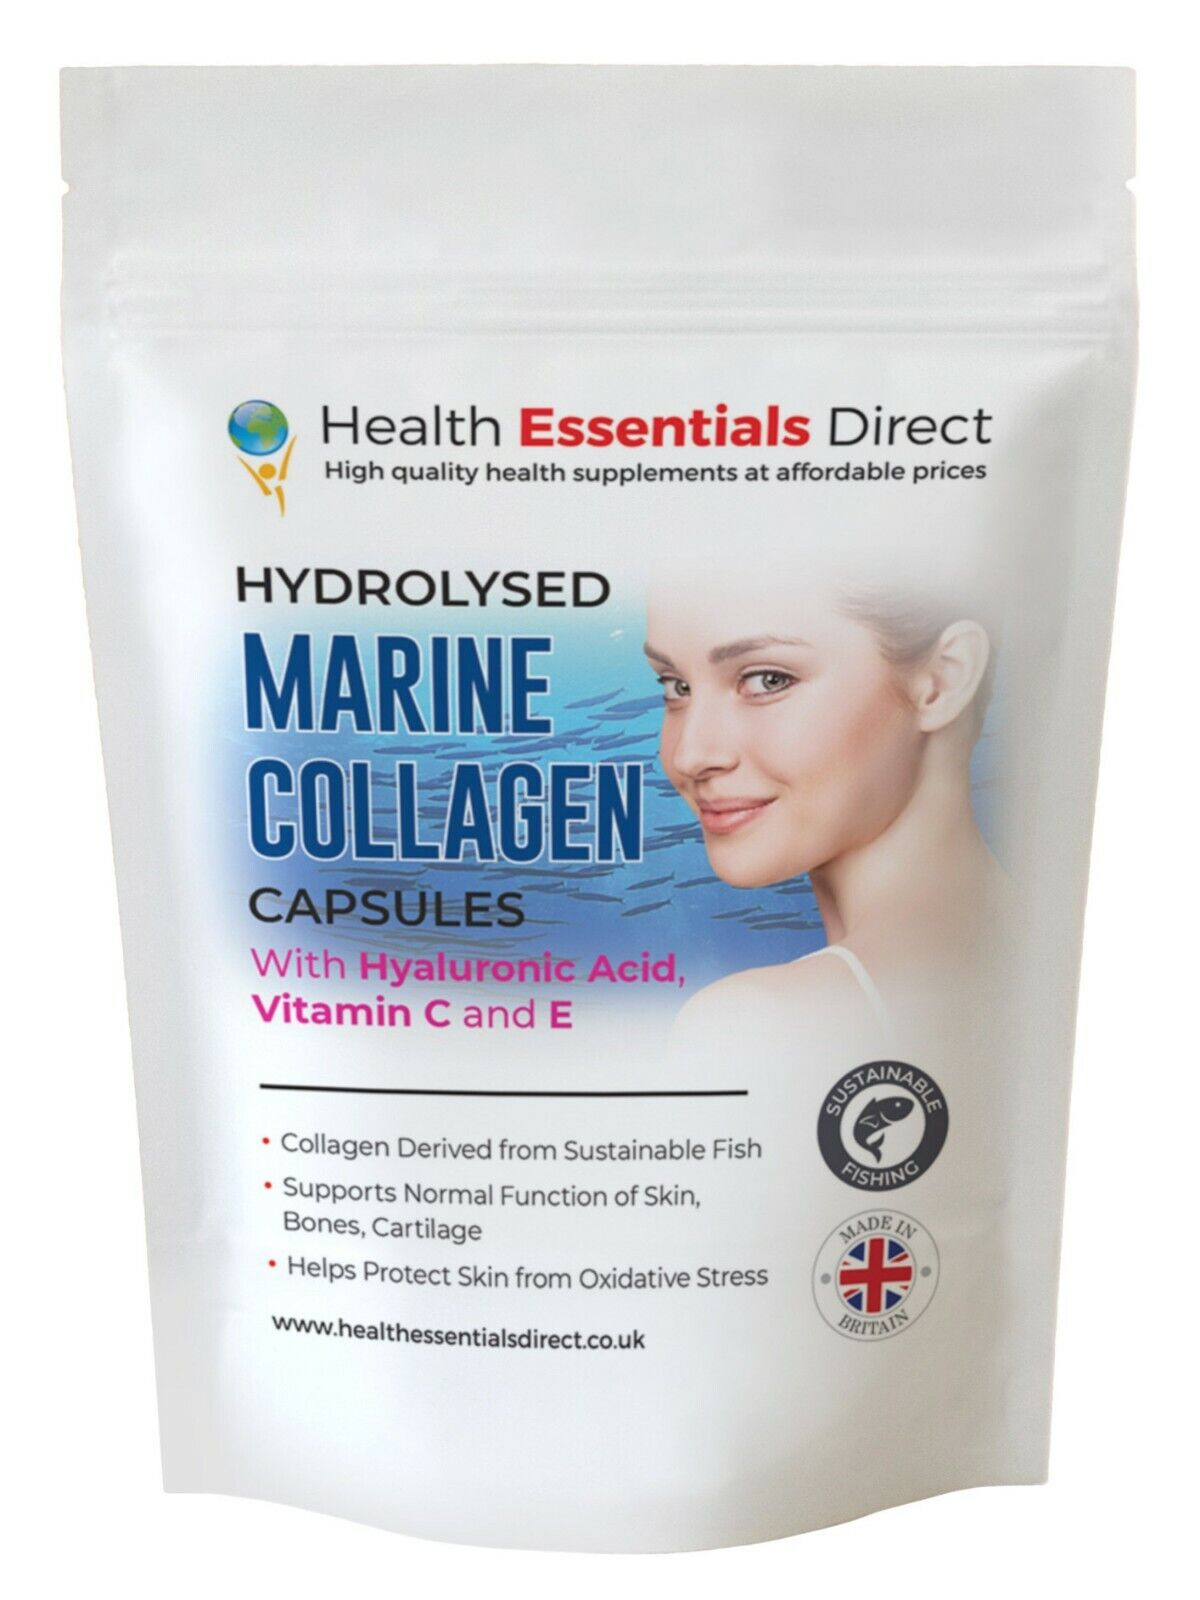 hydrolysed marine collagen complex capsules with hyaluronic